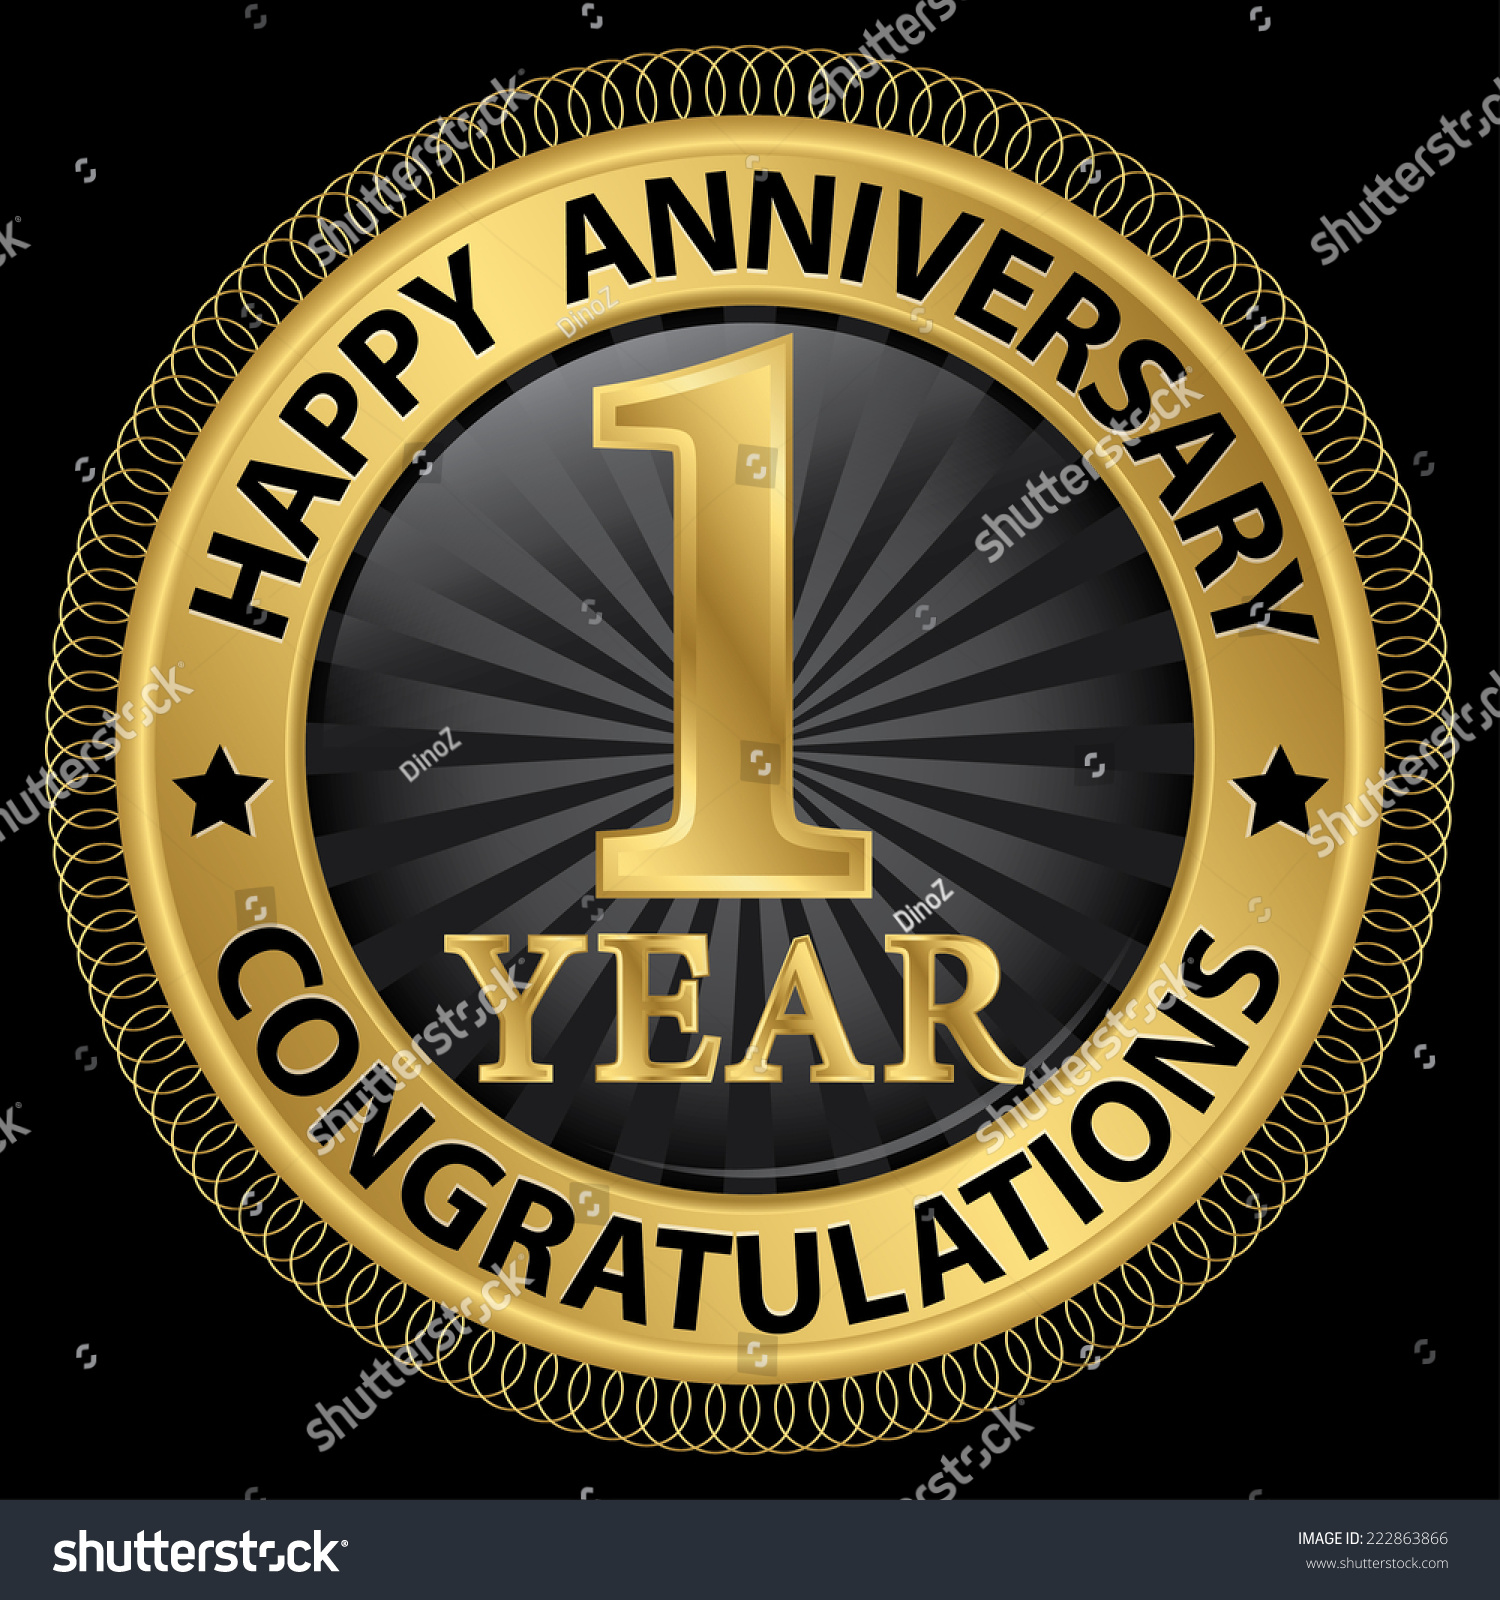 1 Year Happy Anniversary Congratulations Gold Stock Vector 222863866 Shutterstock